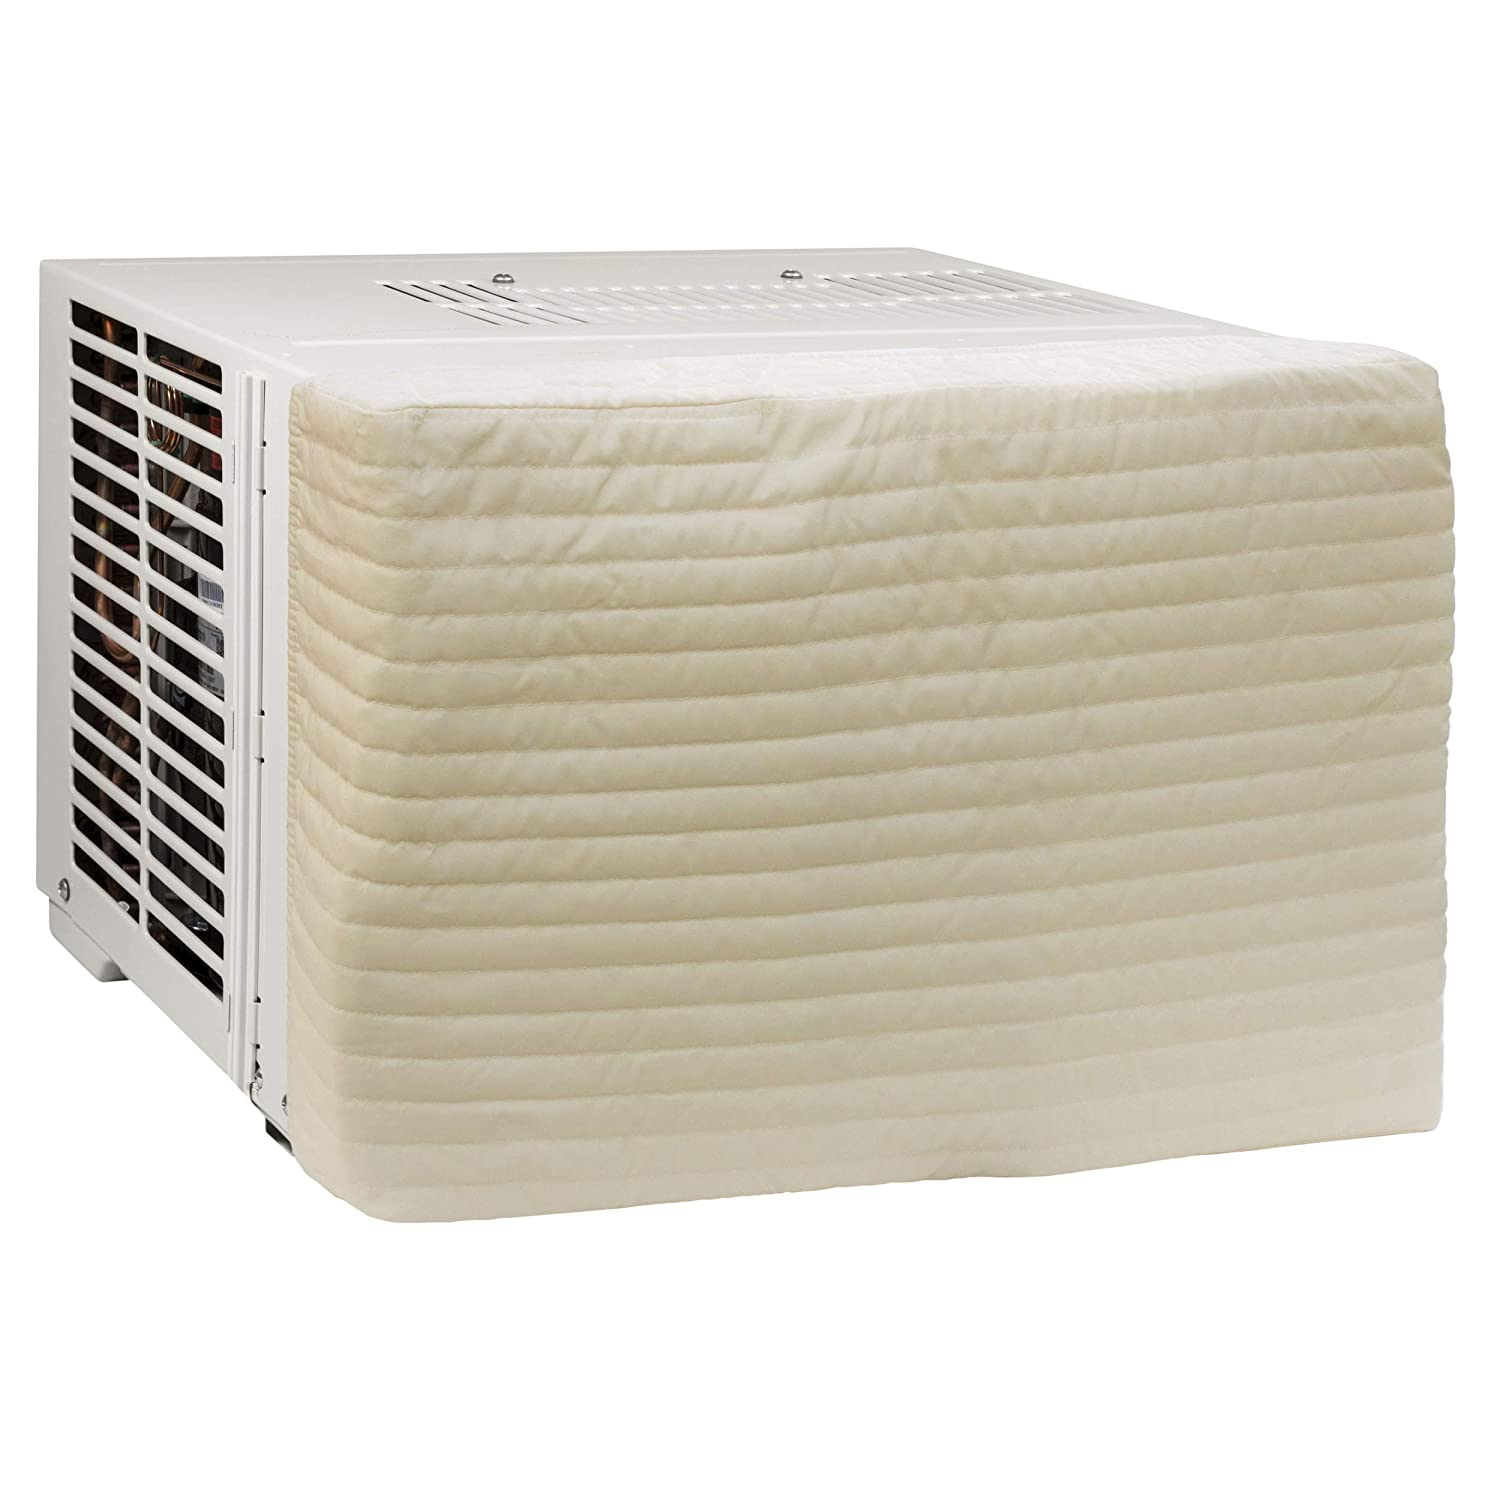 HomeCrate Quilted Indoor Air Conditioner Cover, Double Insulation, Small IAC-SML-10528